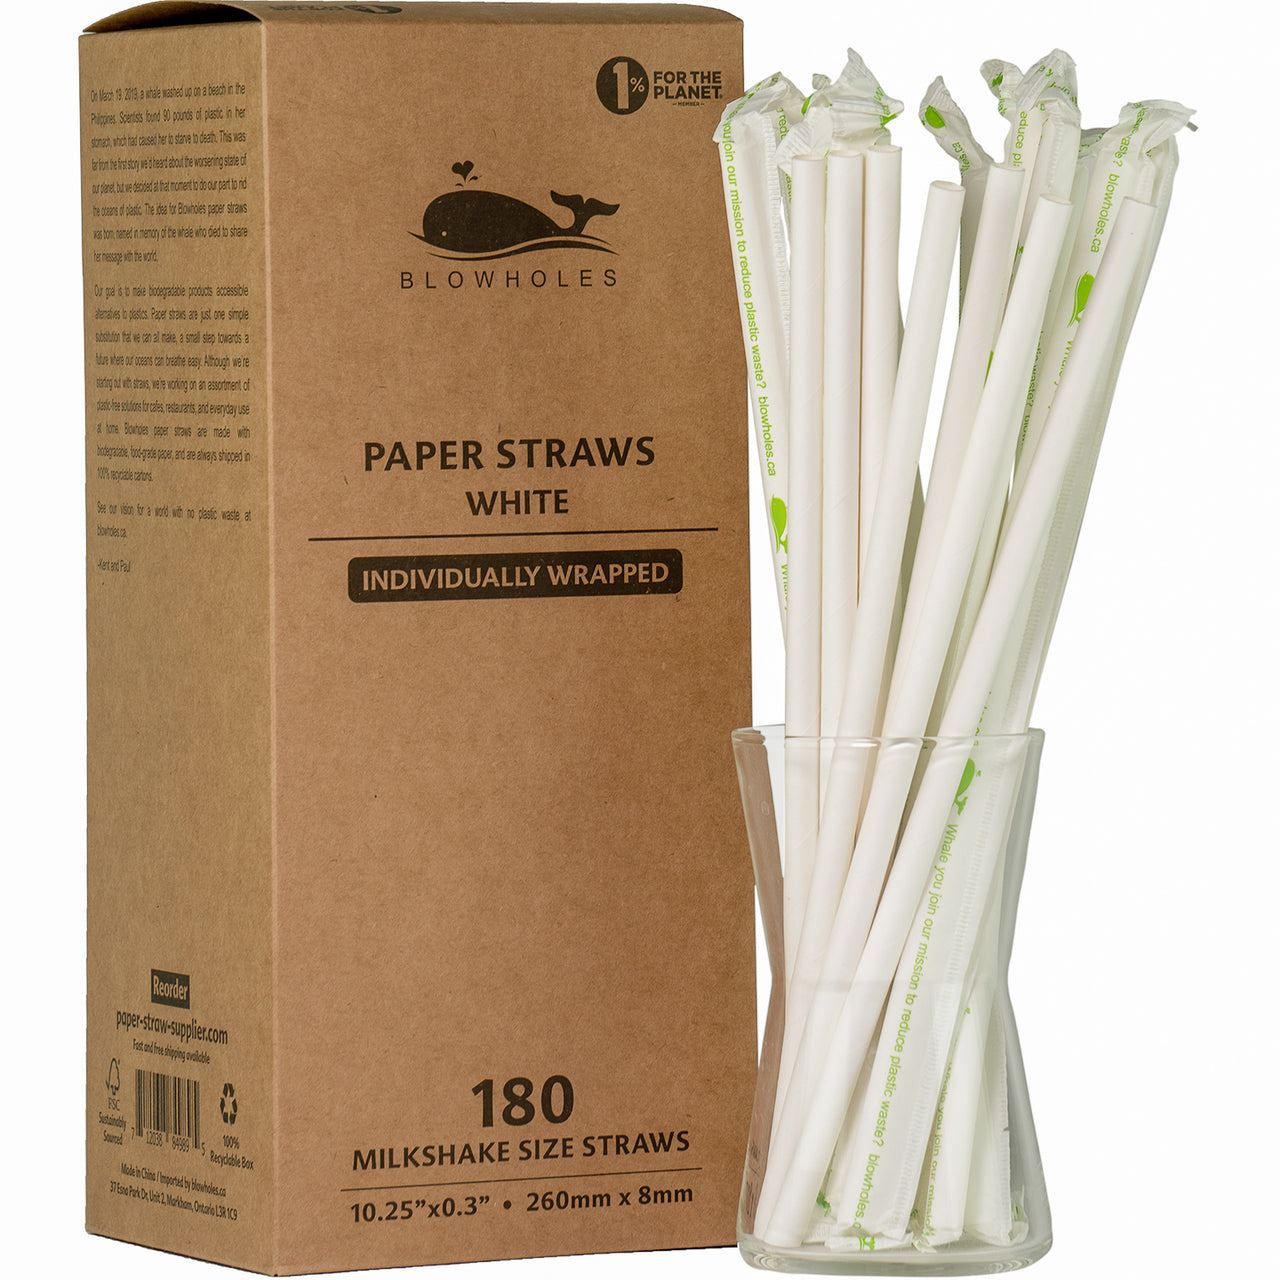 Blowholes Milkshake Size Paper Straws - Individually Wrapped